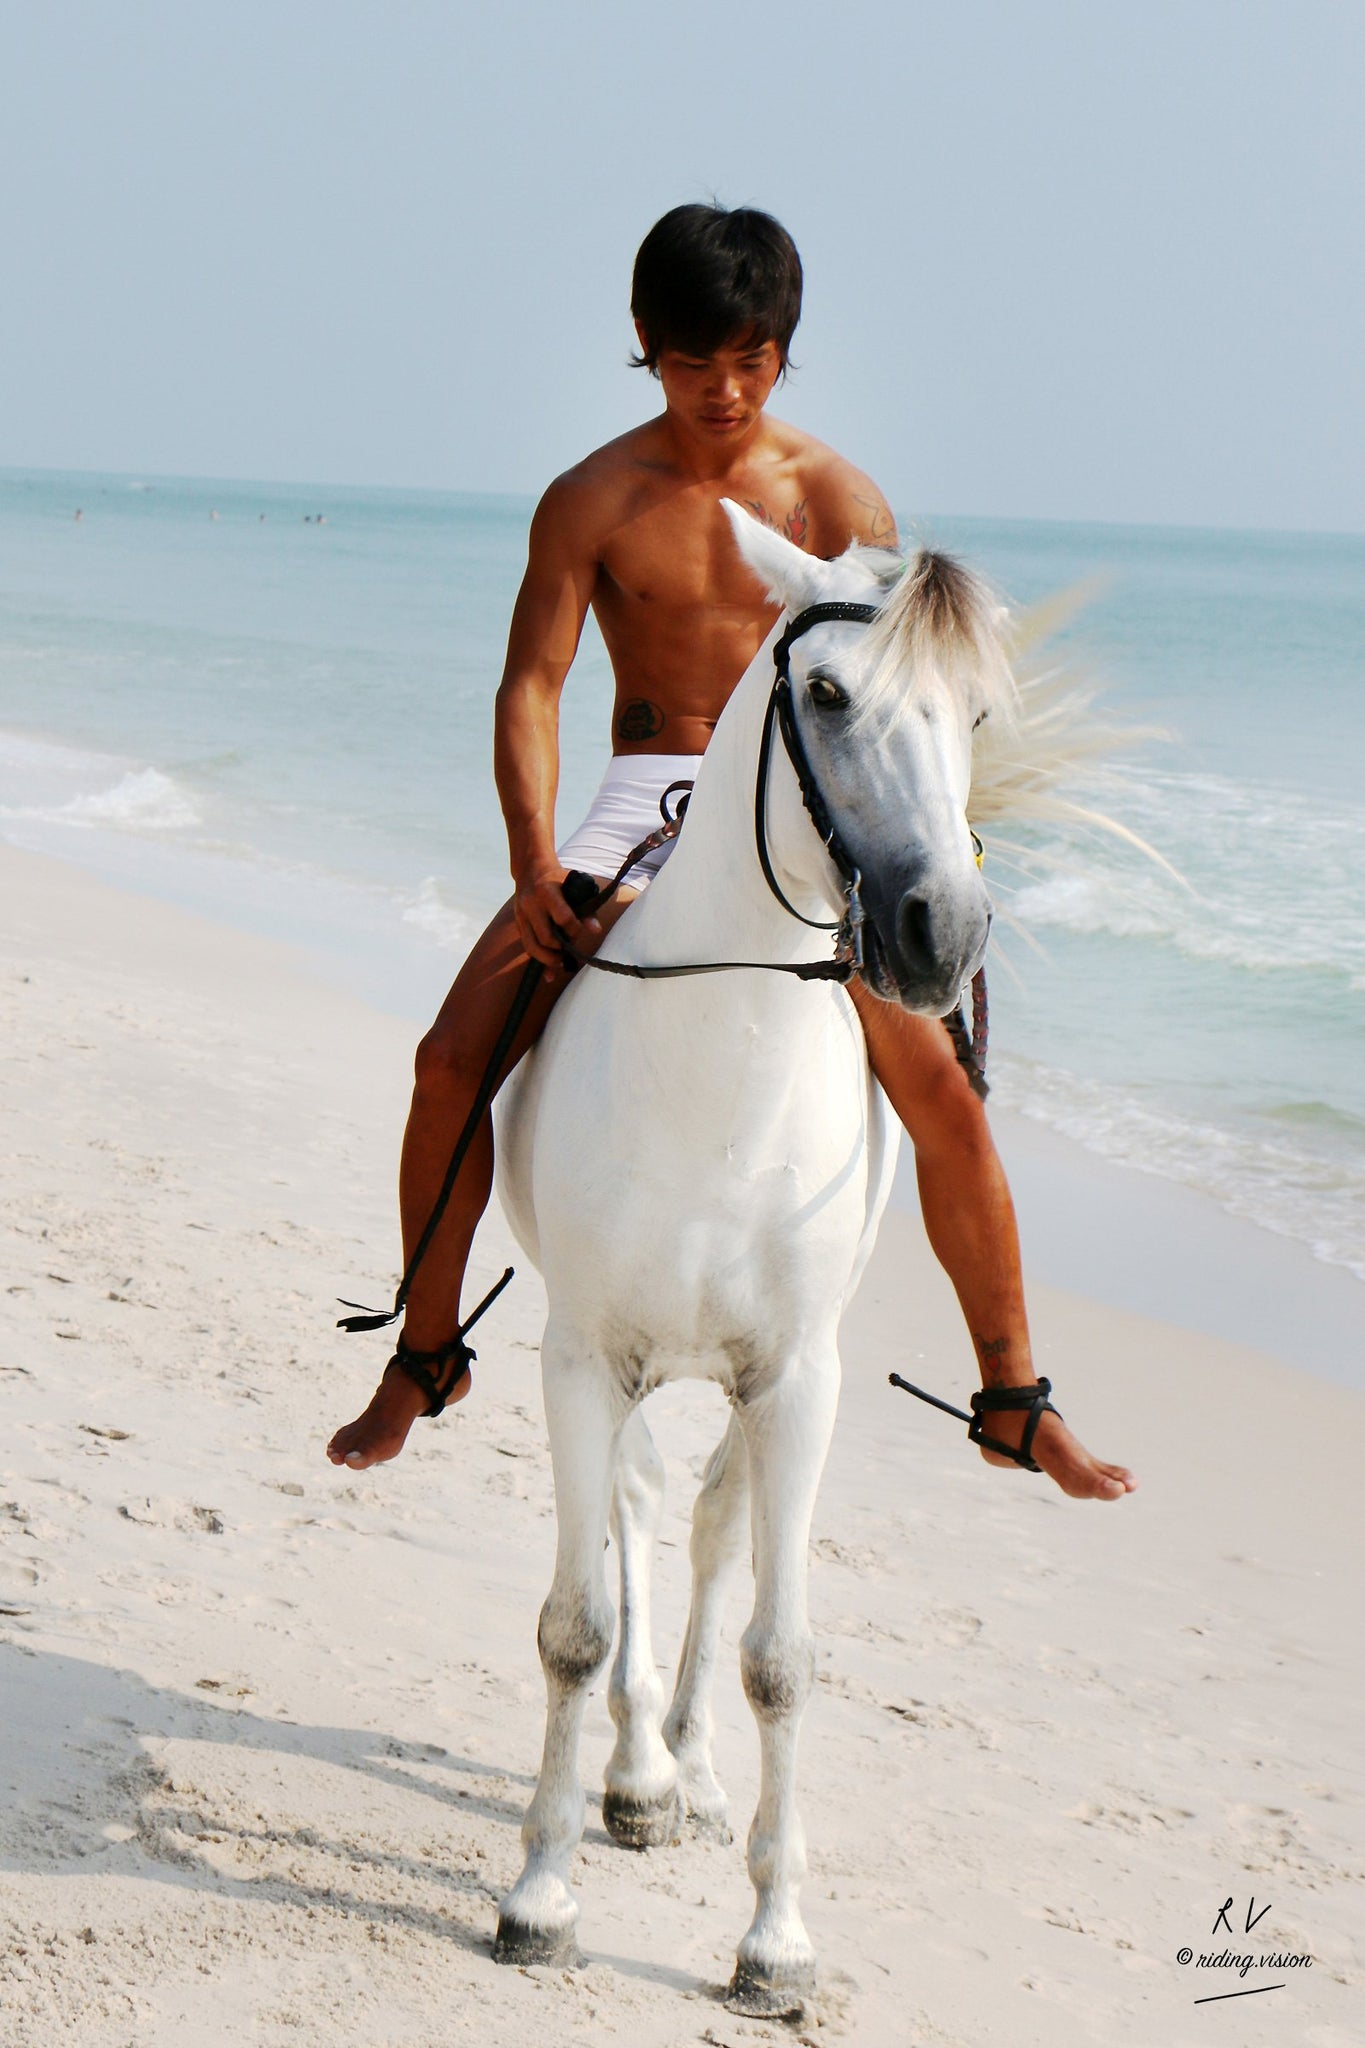 Free Sample Gallery: David in White Spandex Shorts Riding Bareback on White Pony, Part 6 - Riding.Vision